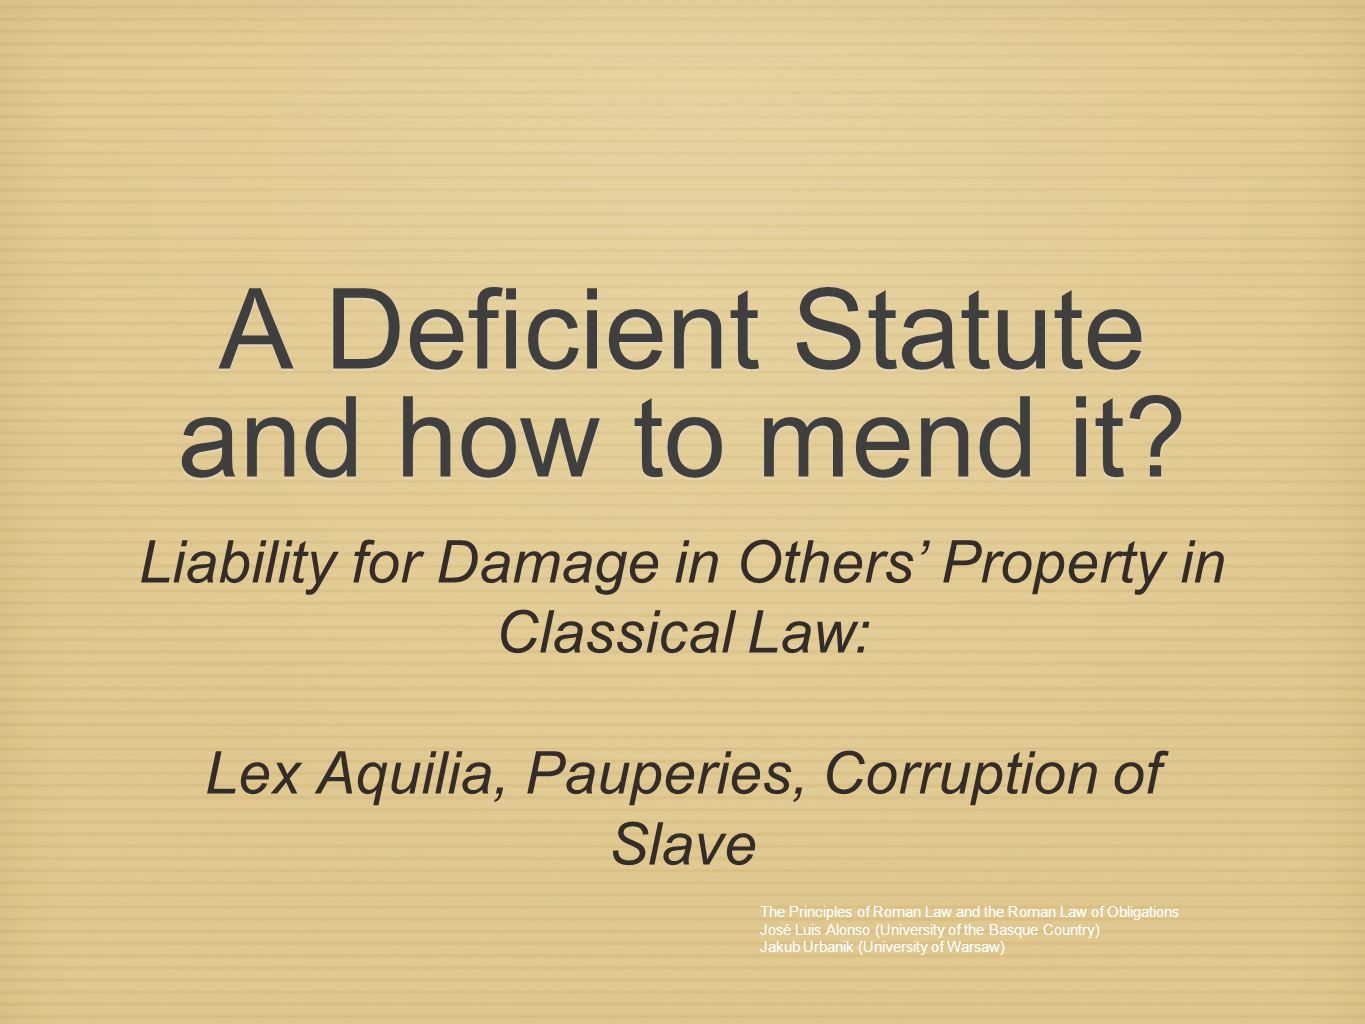 A Deficient Statute and how to mend it.